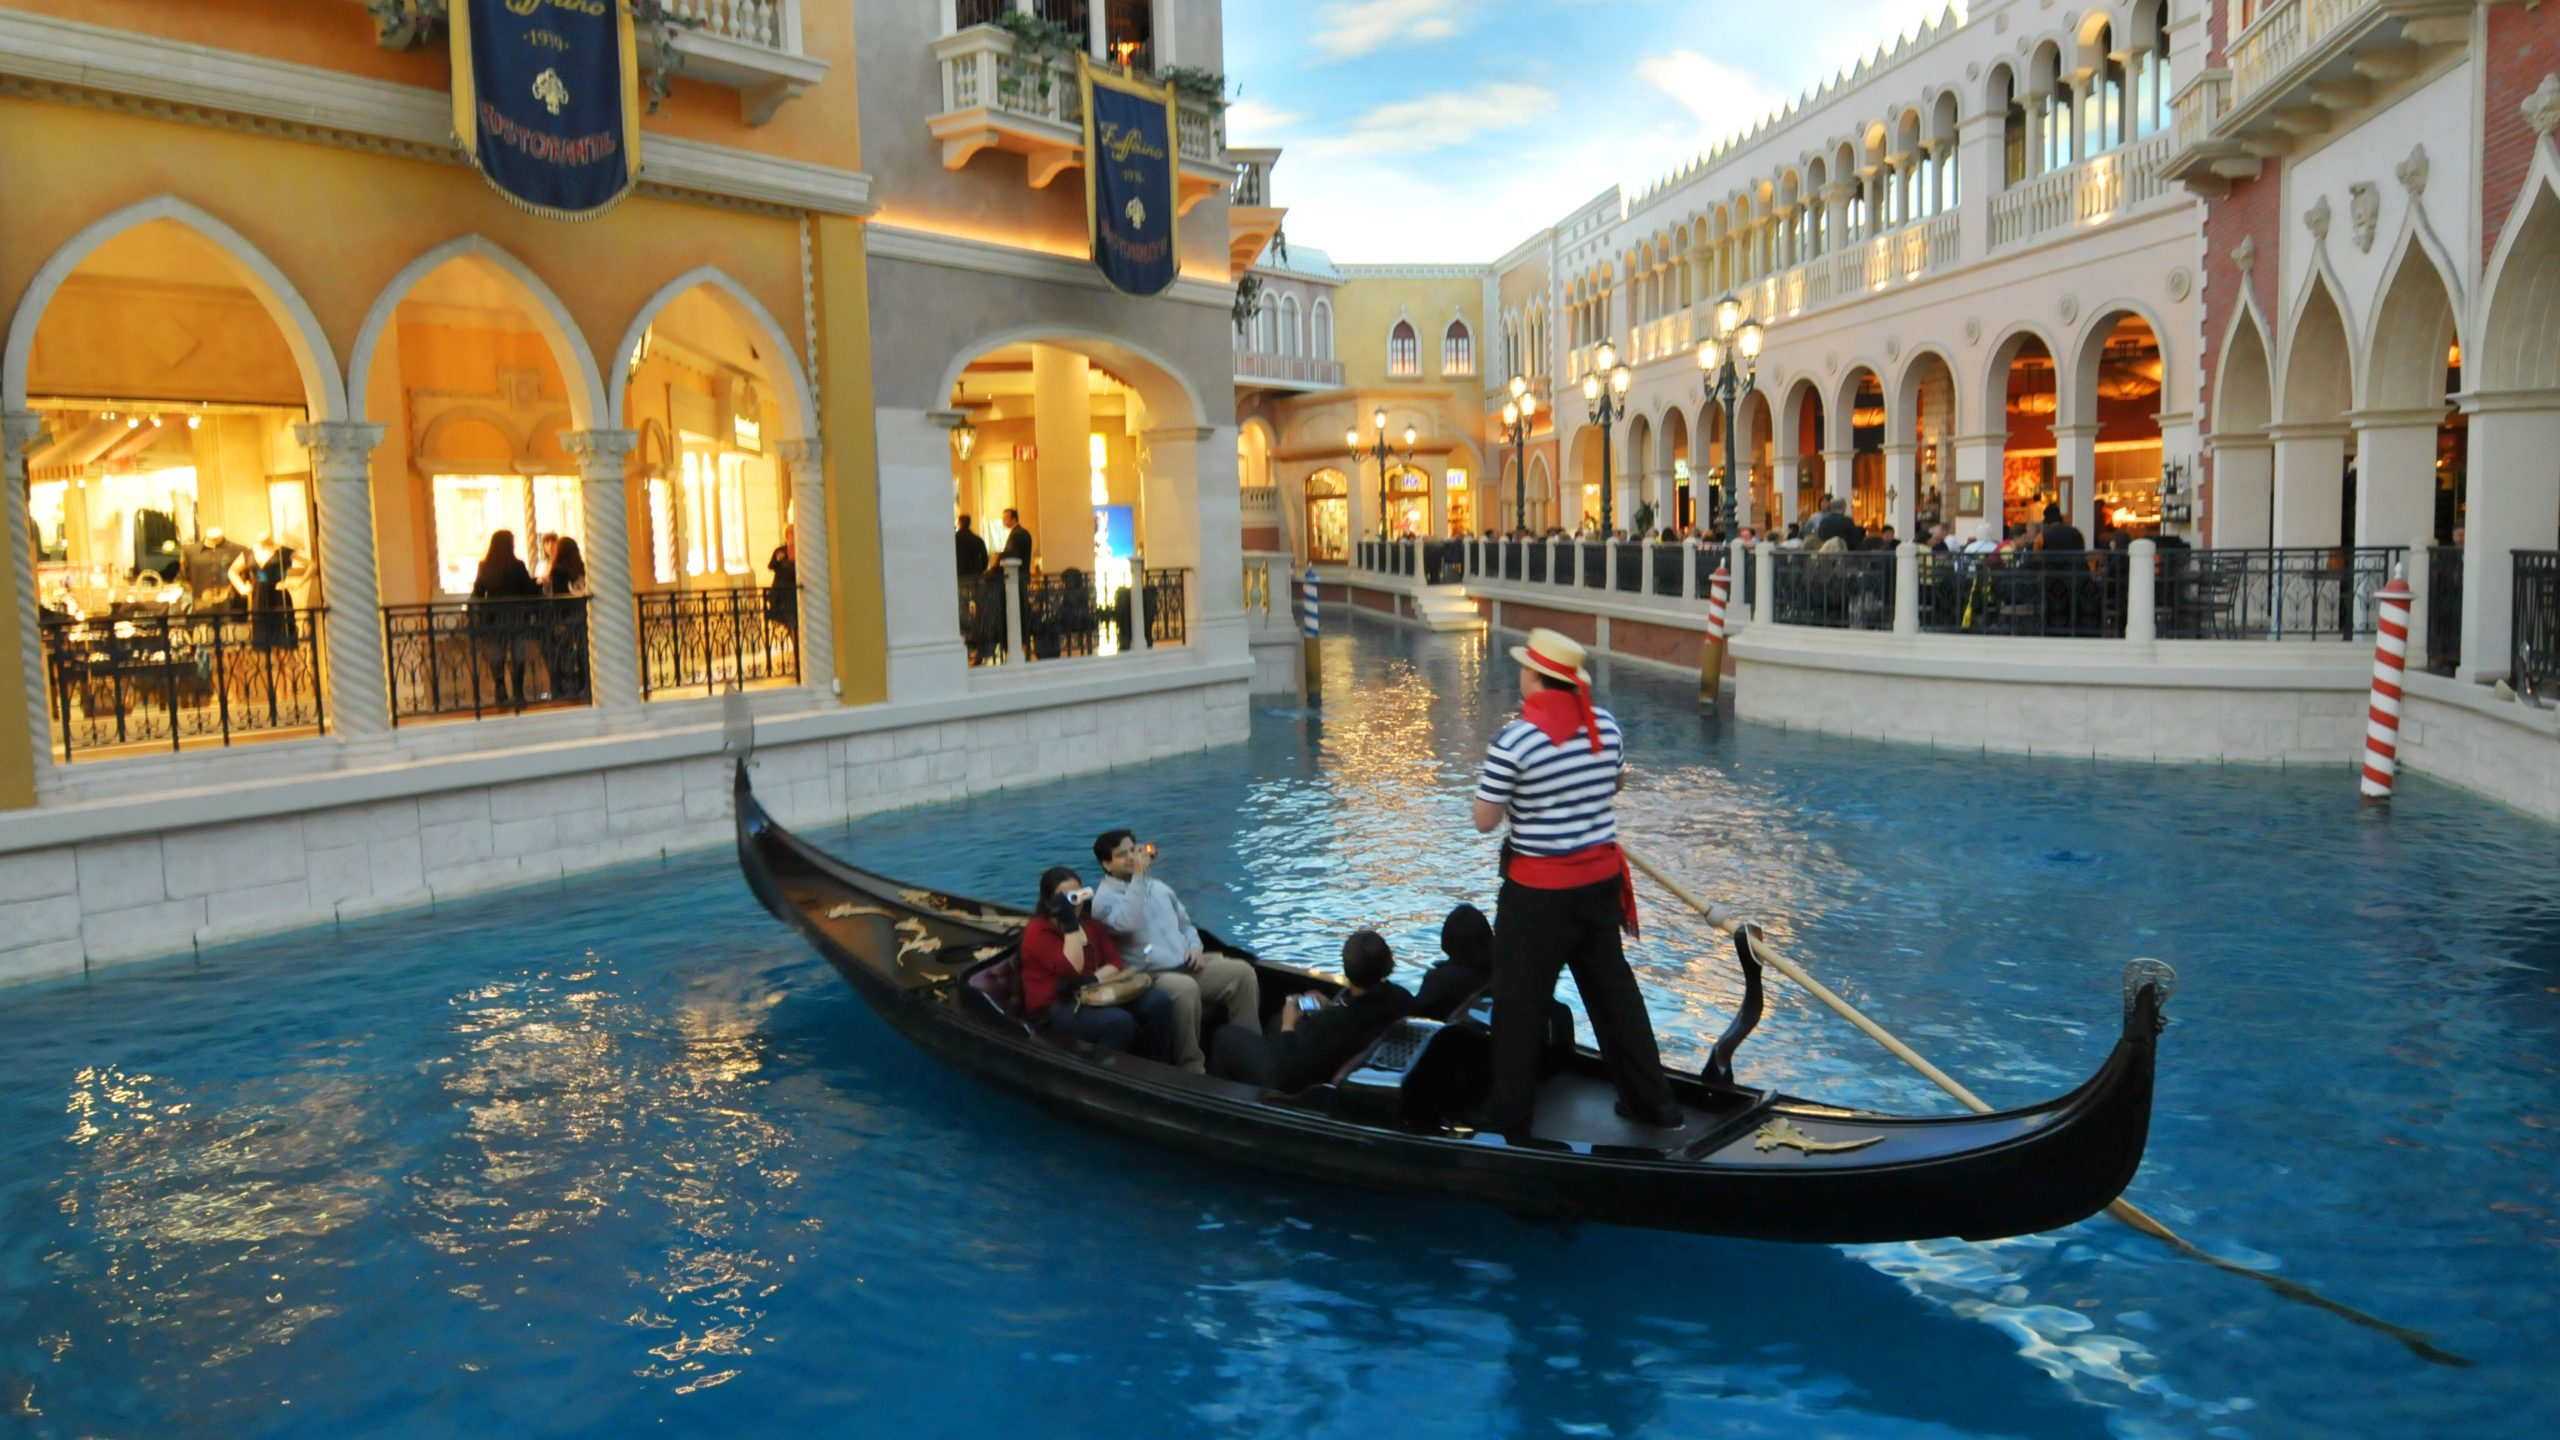 Venetian Hotel - Things That You Should Not Miss in Las Vegas